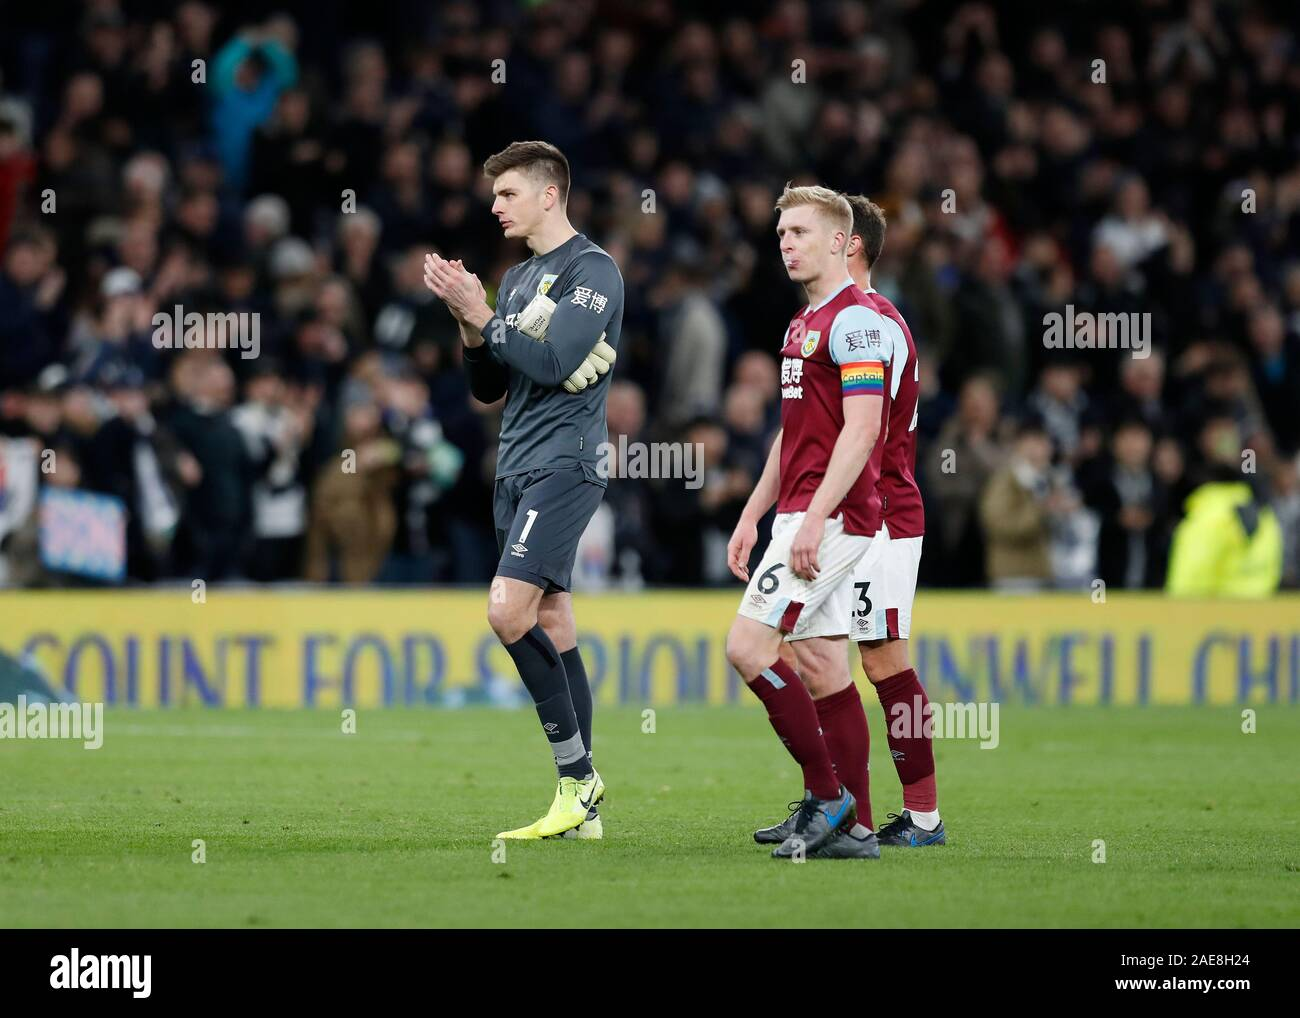 Tottenham Hotspur Stadium, London, UK.  7th Dec, 2019. English Premier League Football, Tottenham Hotspur versus Burnley; Goalkeeper Nick Pope, Erik Pieters and Ben Mee of Burnley all disappointed while walking towards the Burnley fans after full time - Strictly Editorial Use Only. No use with unauthorized audio, video, data, fixture lists, club/league logos or 'live' services. Online in-match use limited to 120 images, no video emulation. No use in betting, games or single club/league/player publications Credit: Action Plus Sports/Alamy Live News Stock Photo